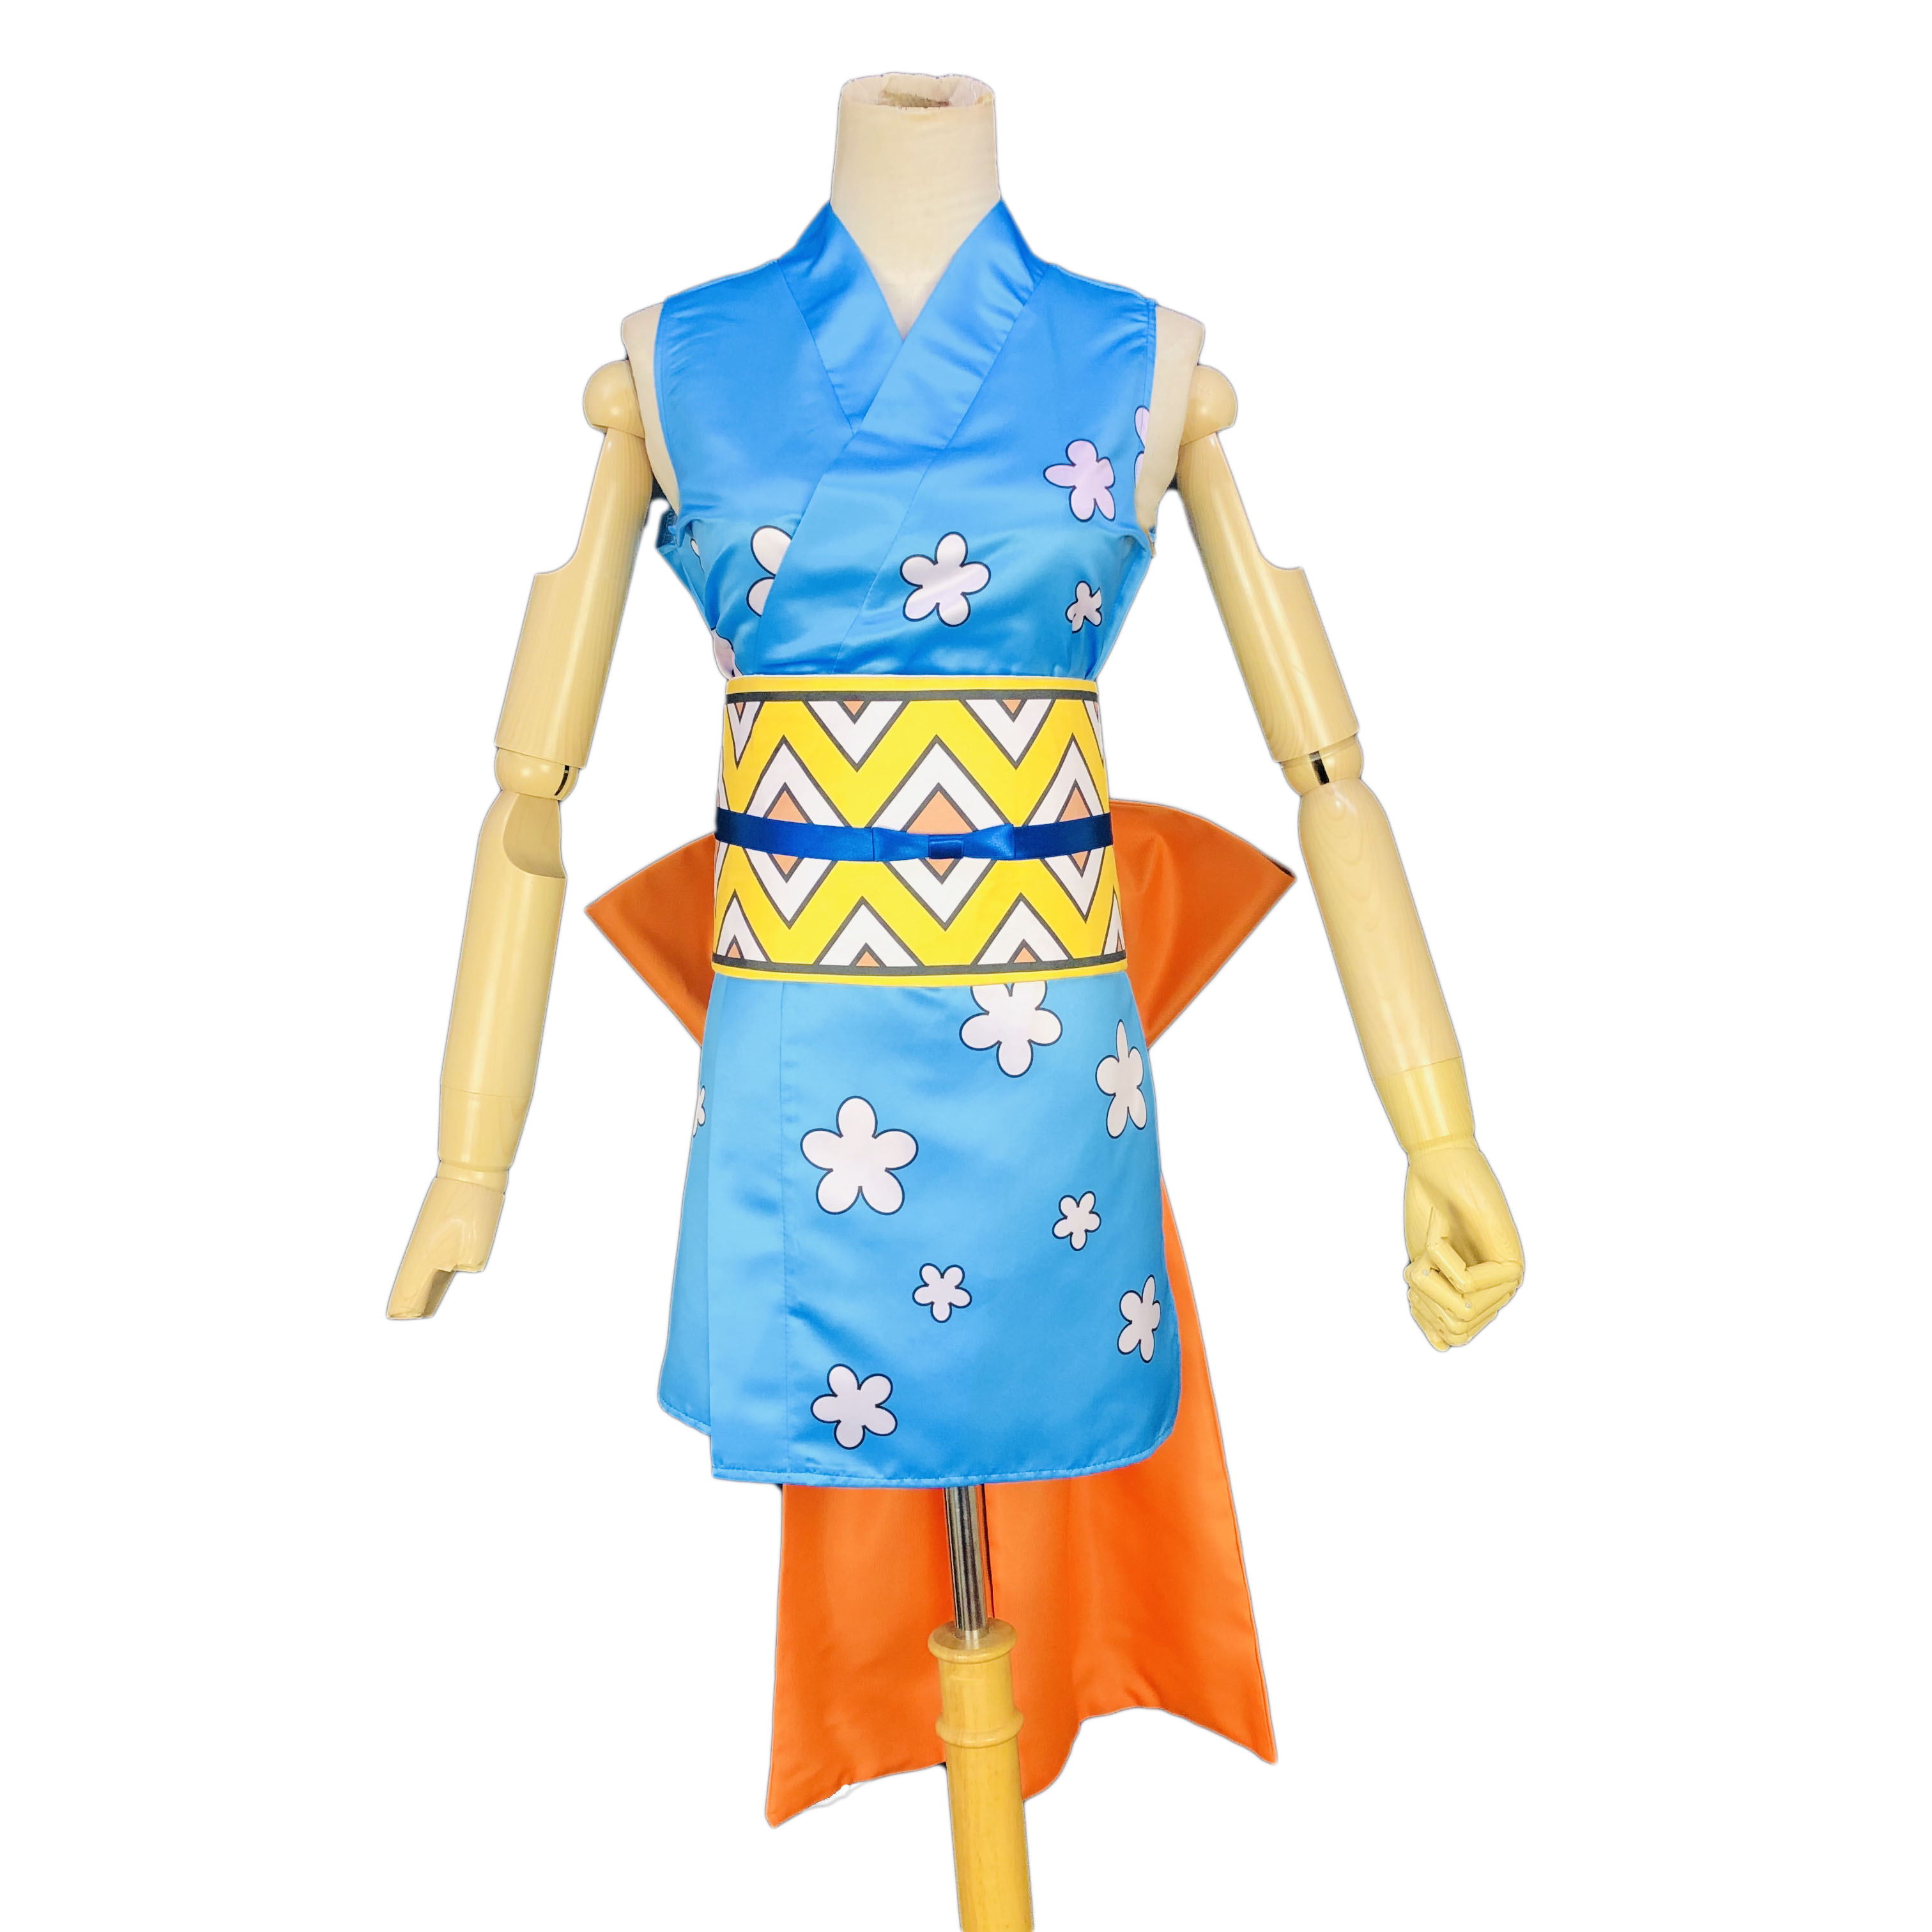 2019 Customize One Piece Wano Country Arc Cosplay Costume Wano Kuni Nami Cosplay Costume